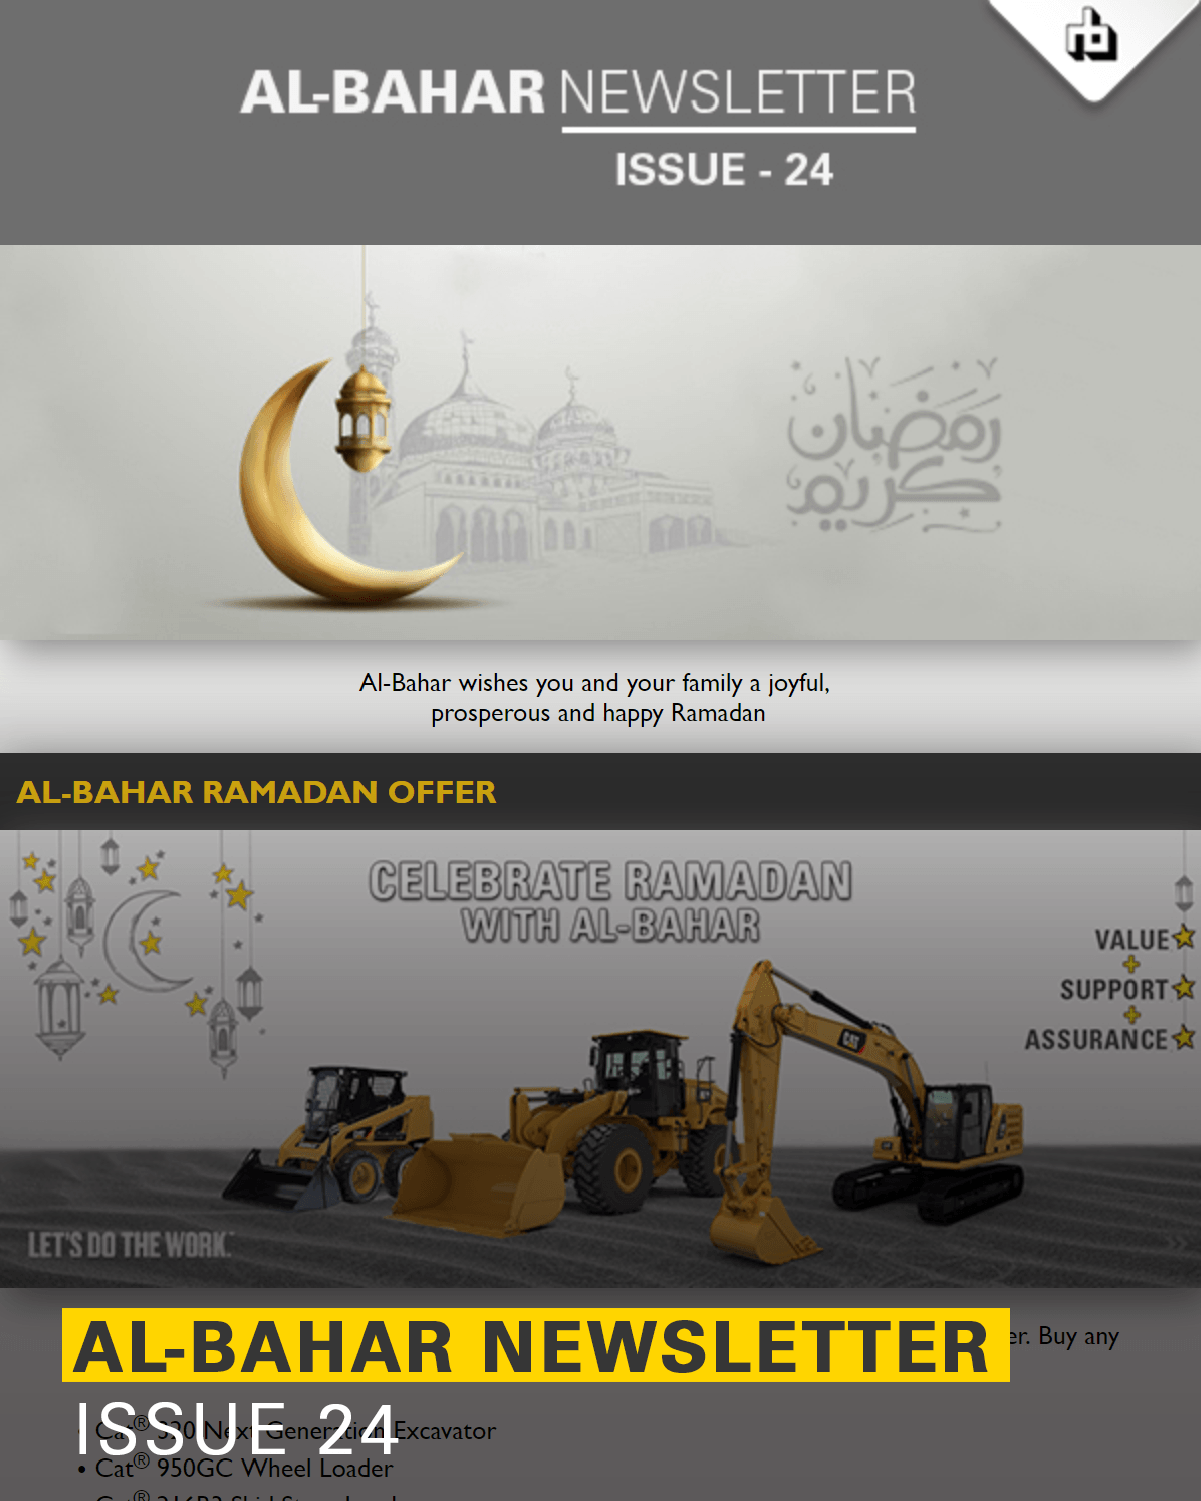 al-bahar-april-2019-newsletter-3